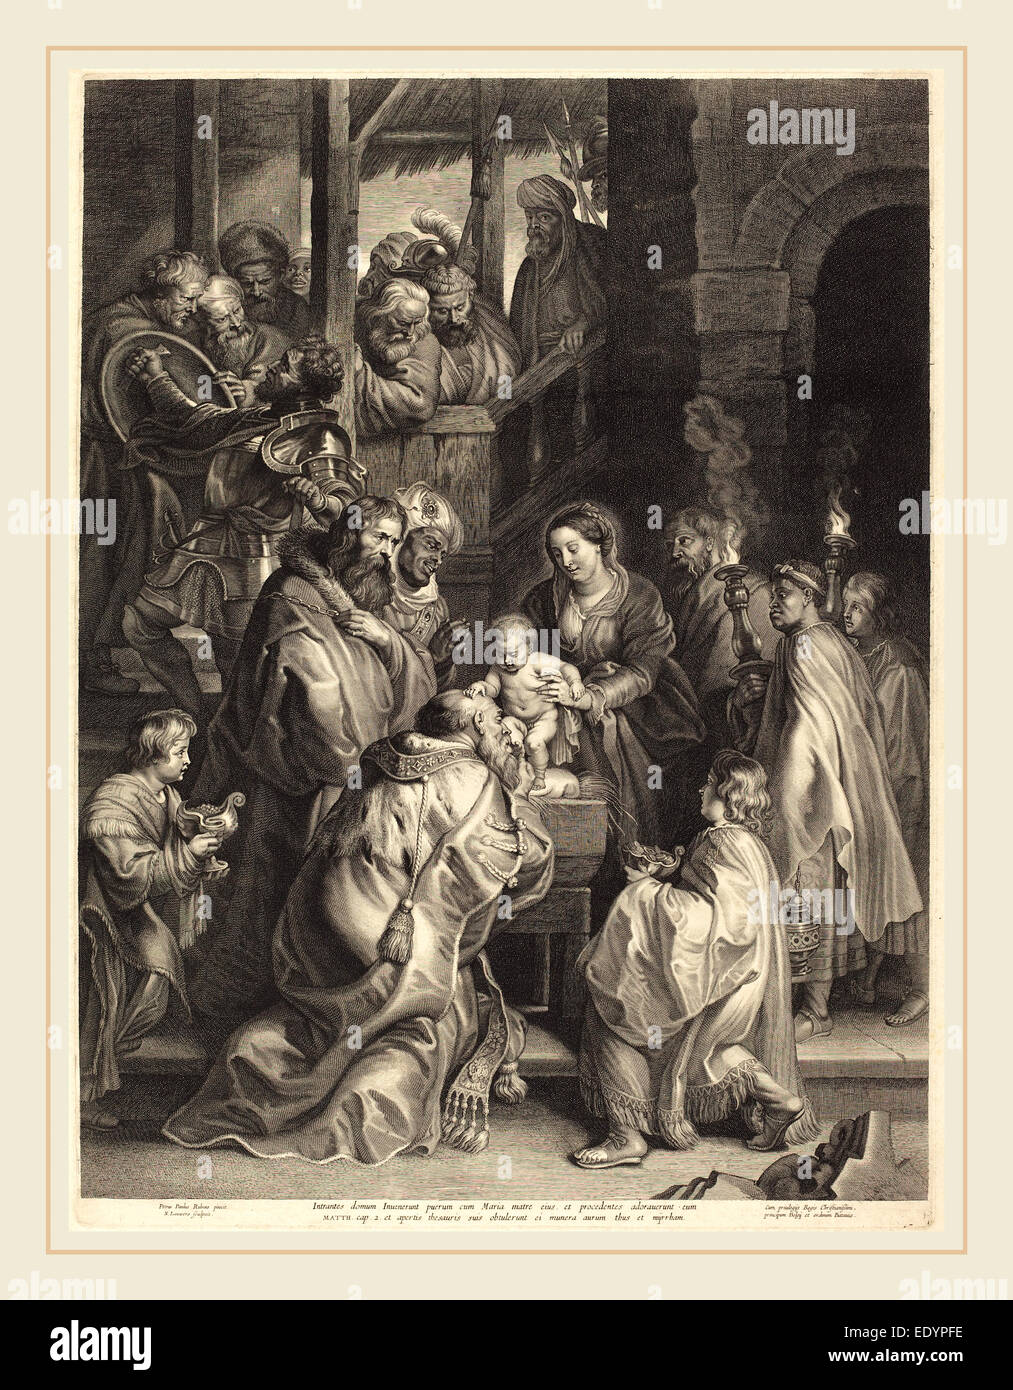 Nicolaes Lauwers, after Sir Peter Paul Rubens, Flemish (1600-1652), The  Adoration of the Magi with Torches, engraving